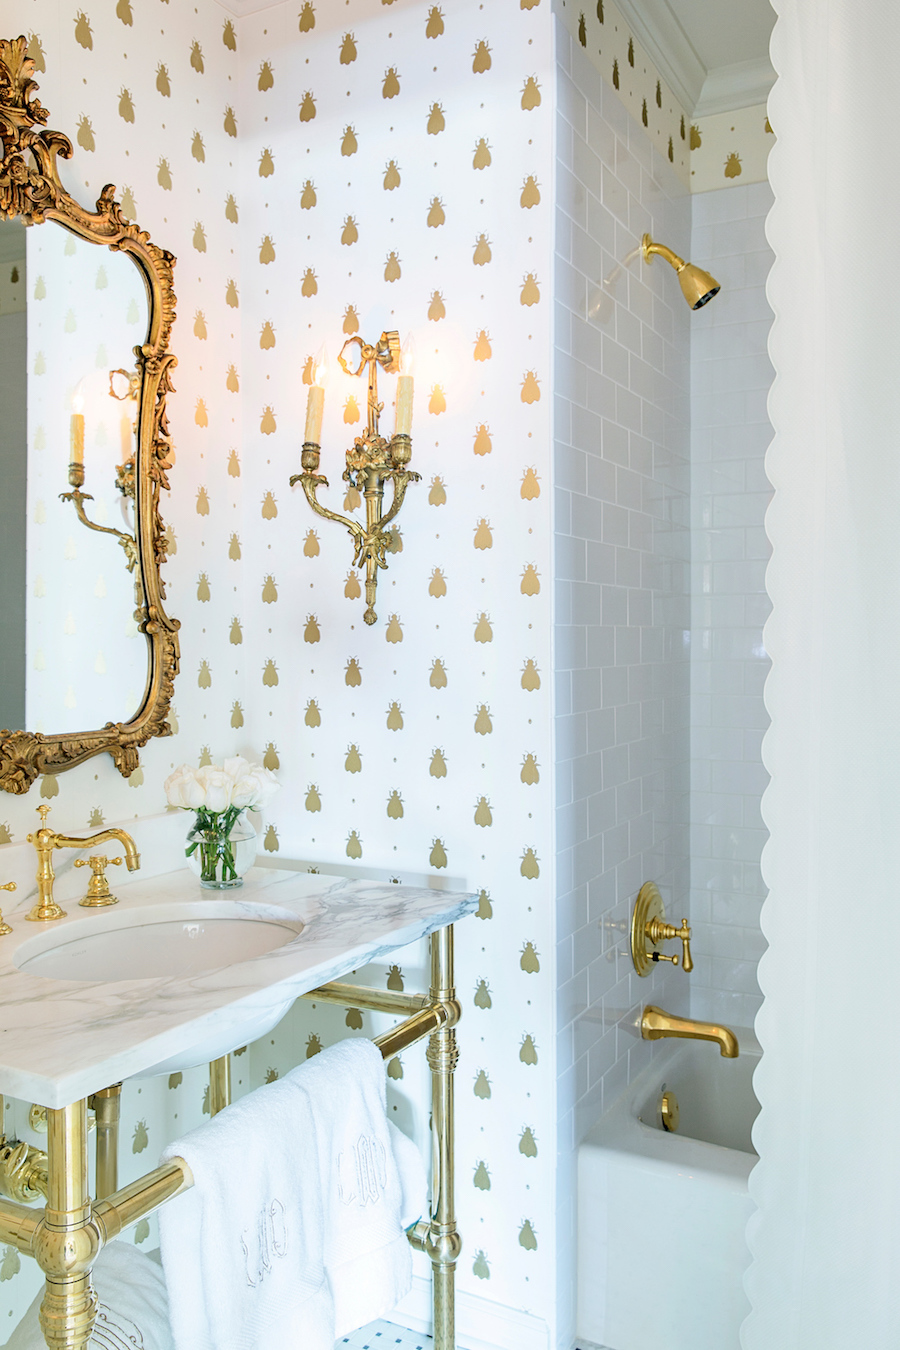 Gold fixtures in marble bathroom with gilded mirror and spotted wallpaper